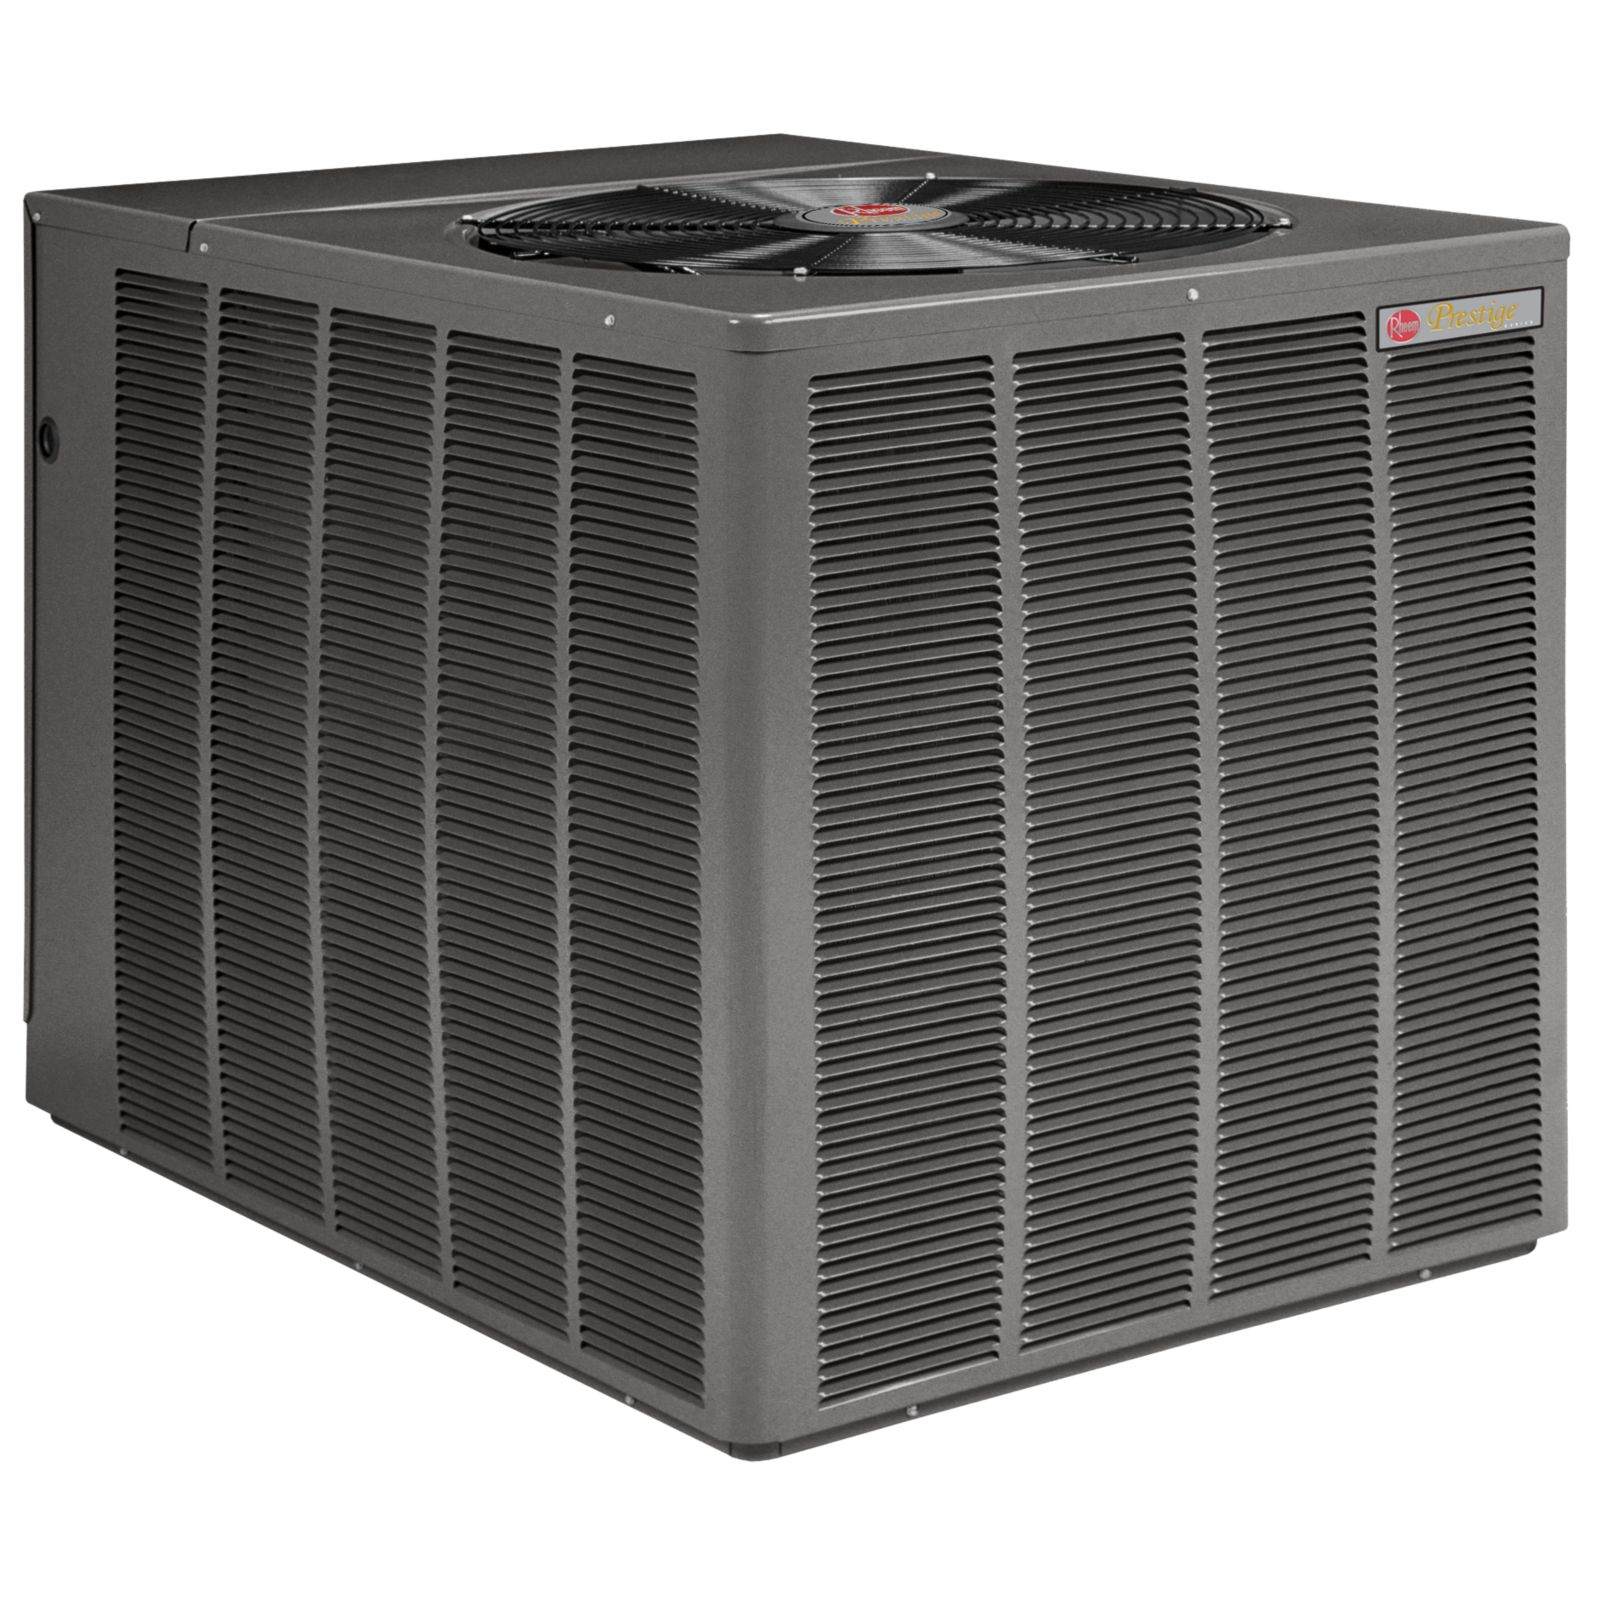 Rheem RPRL-025JEC - Prestige Series 2 Ton, 16 SEER, R410A Heat Pump With Comfort Control 2 - 208-230 V, 1 Ph, 60 Hz